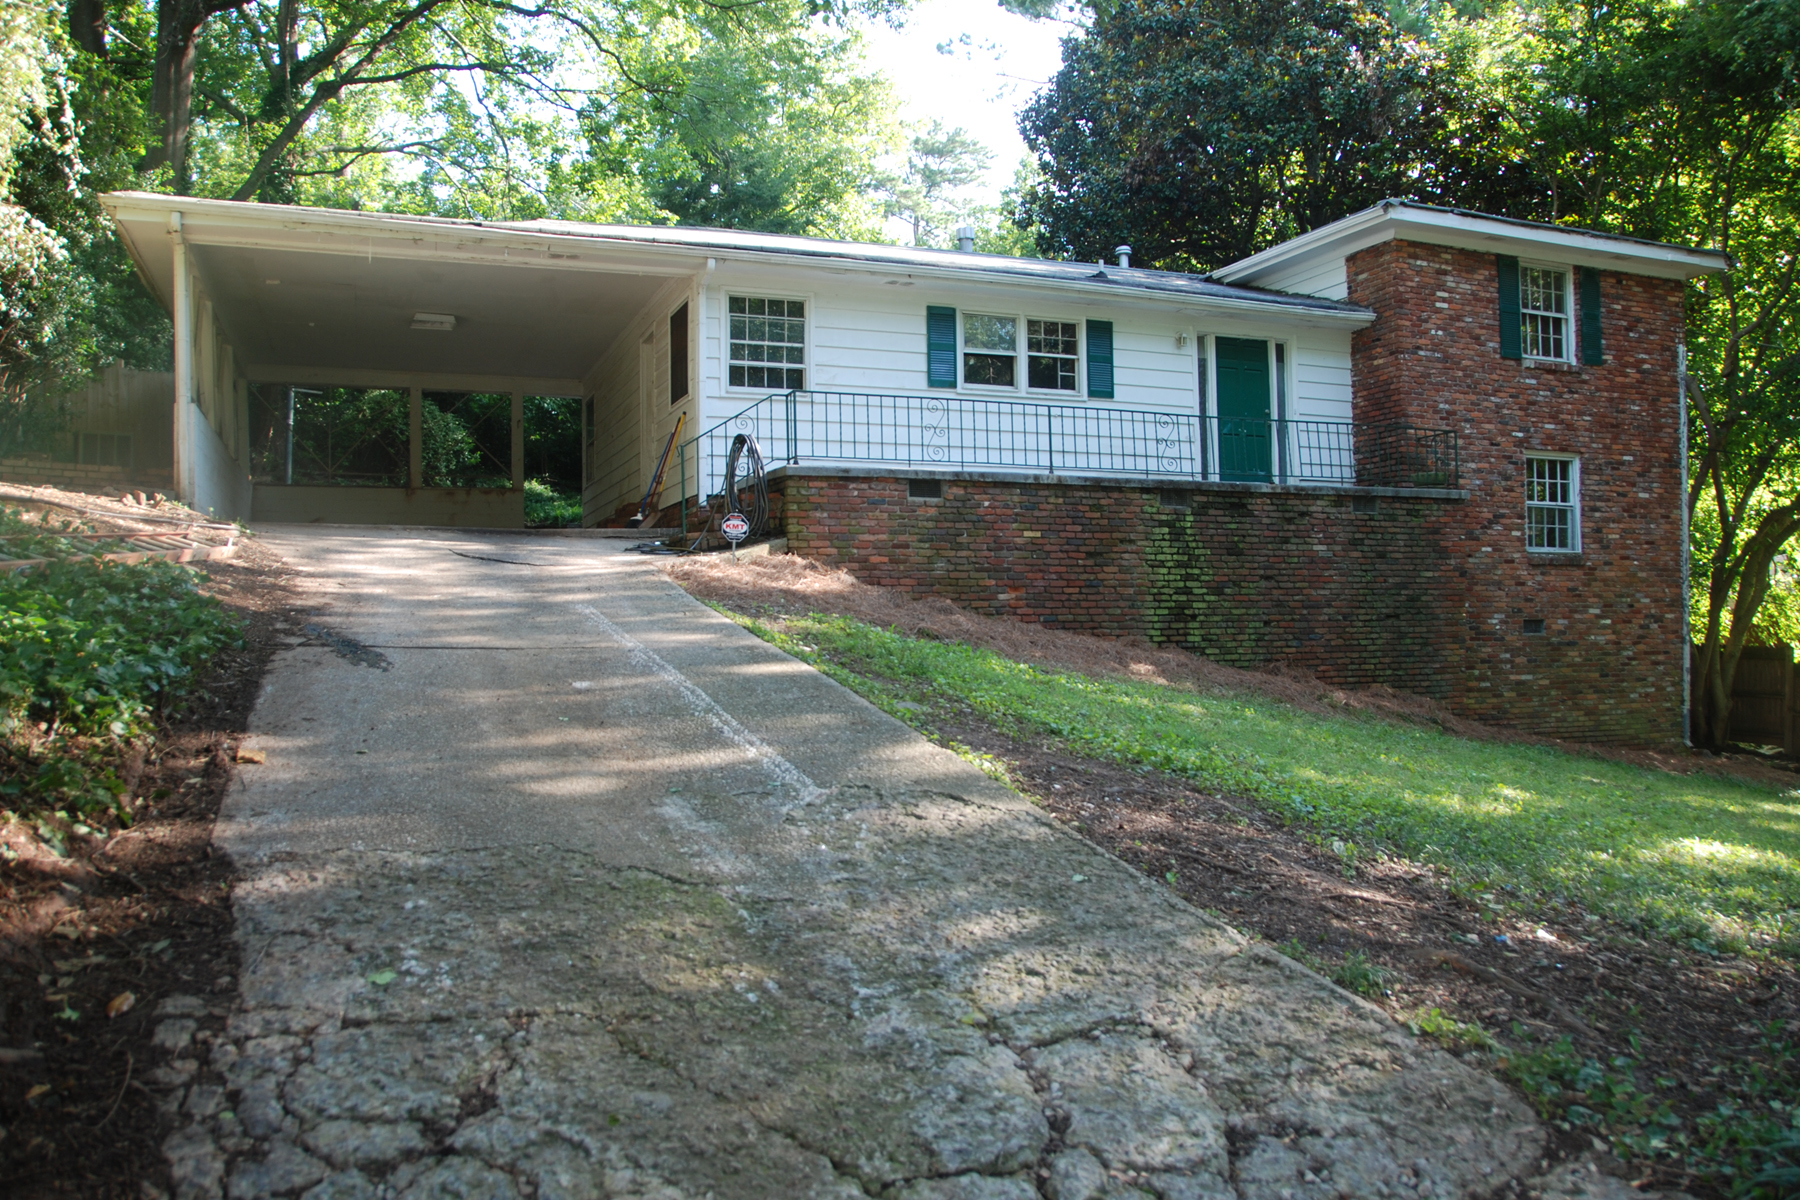 Single Family Home for Sale at Split-Level Home in Sought-After North Buckhead 348 Lakemoore Drive NE Atlanta, Georgia 30342 United States